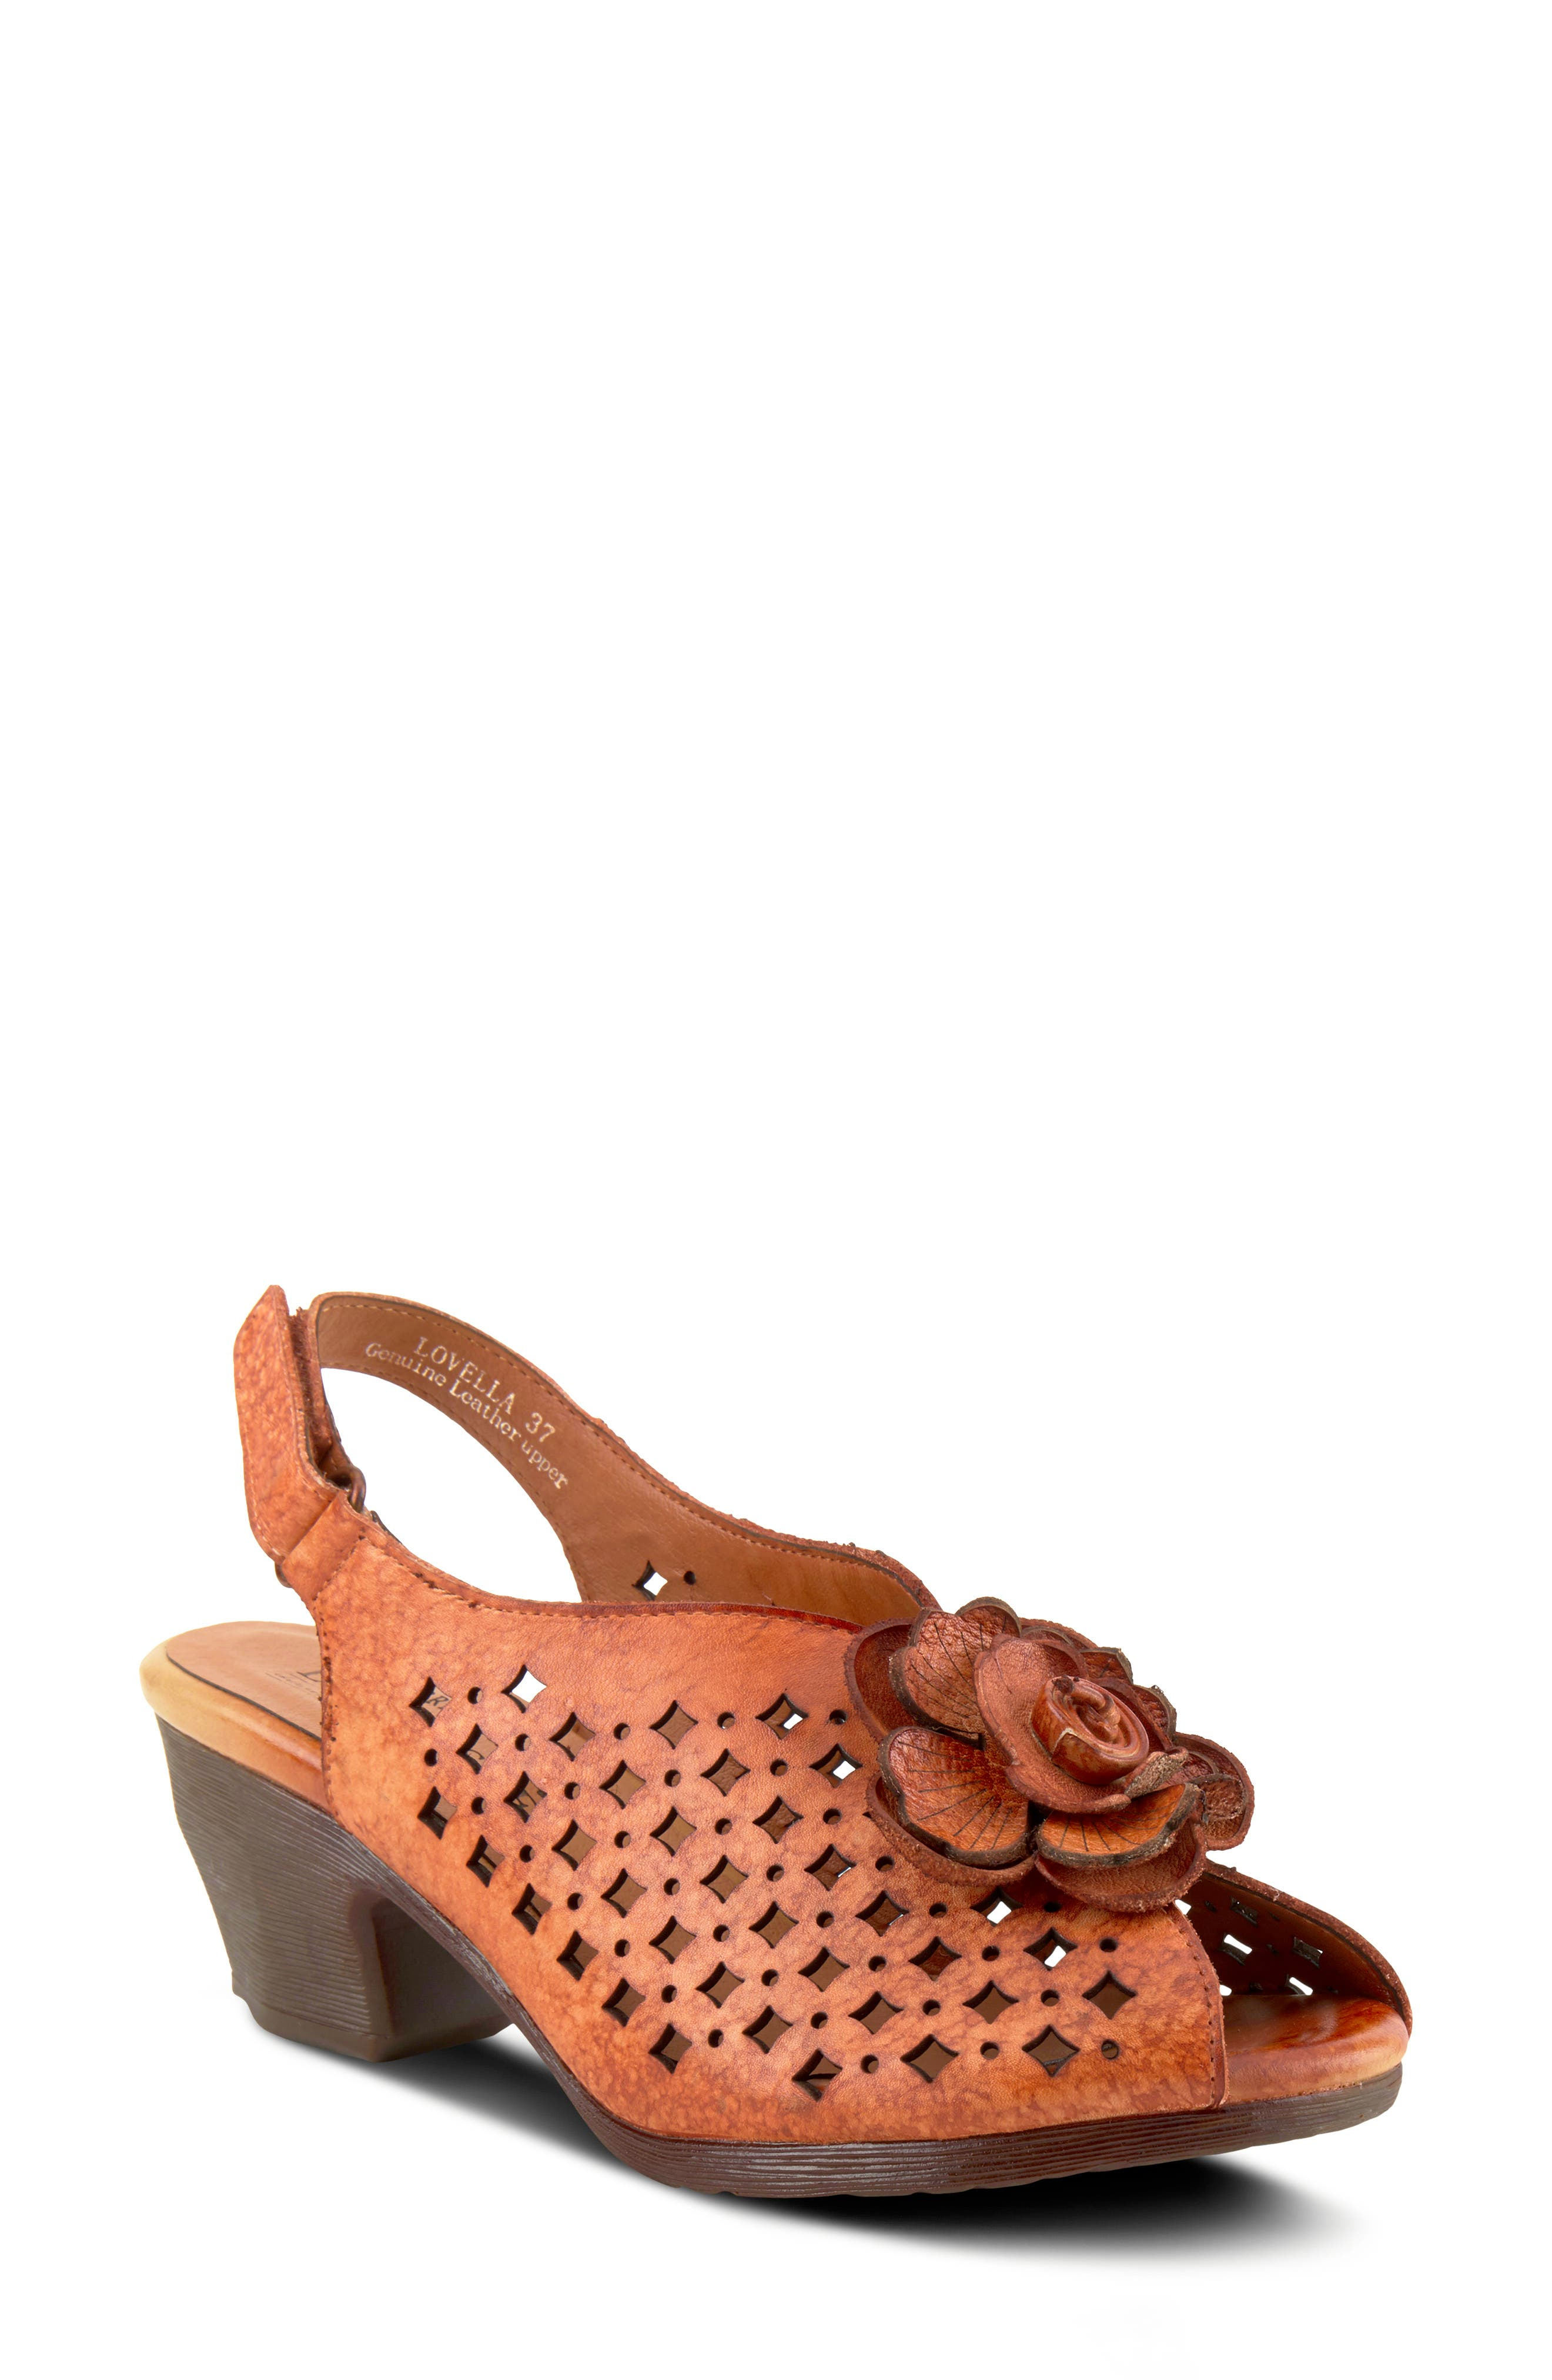 A lovely dimensional flower highlights the peep toe of a slingback sandal punctuated with laser-cut perforations and set on a tapered heel. Style Name:L\\\'Artiste Lovella Slingback Sandal (Women). Style Number: 5980133. Available in stores.